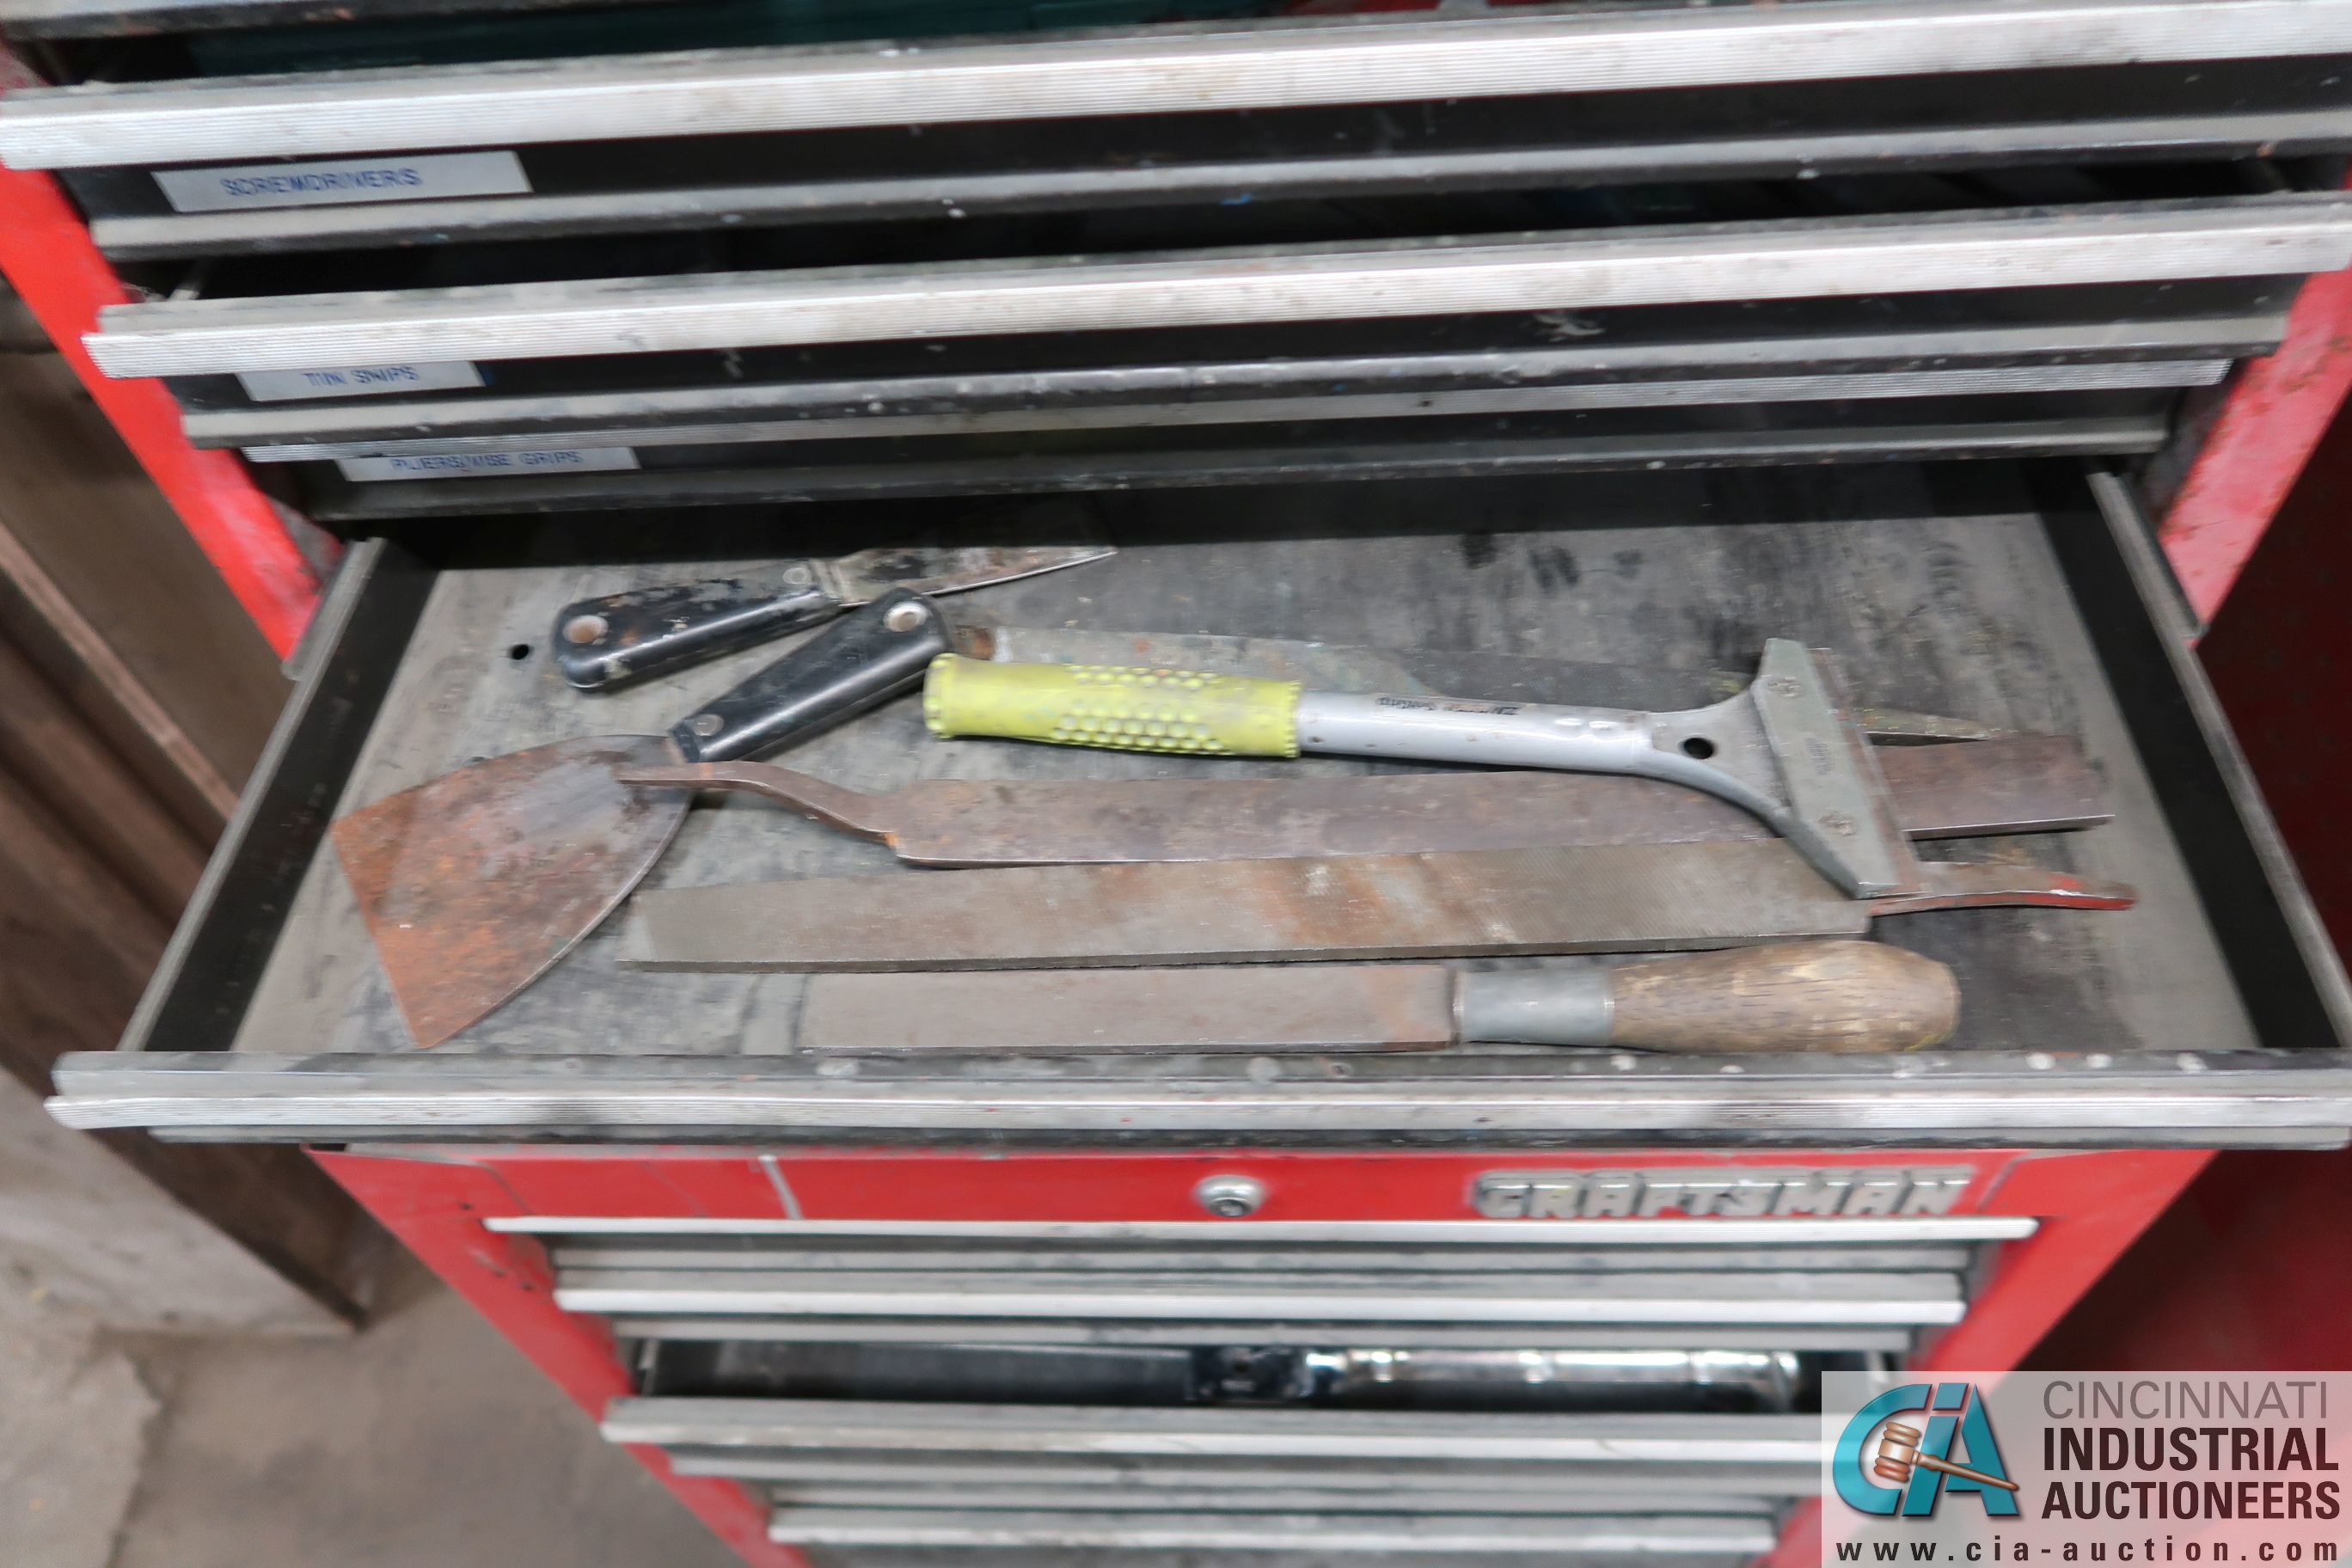 13-DRAWER CRAFTSMAN PORTABLE TOOLBOX WITH TOOLS - Image 3 of 5